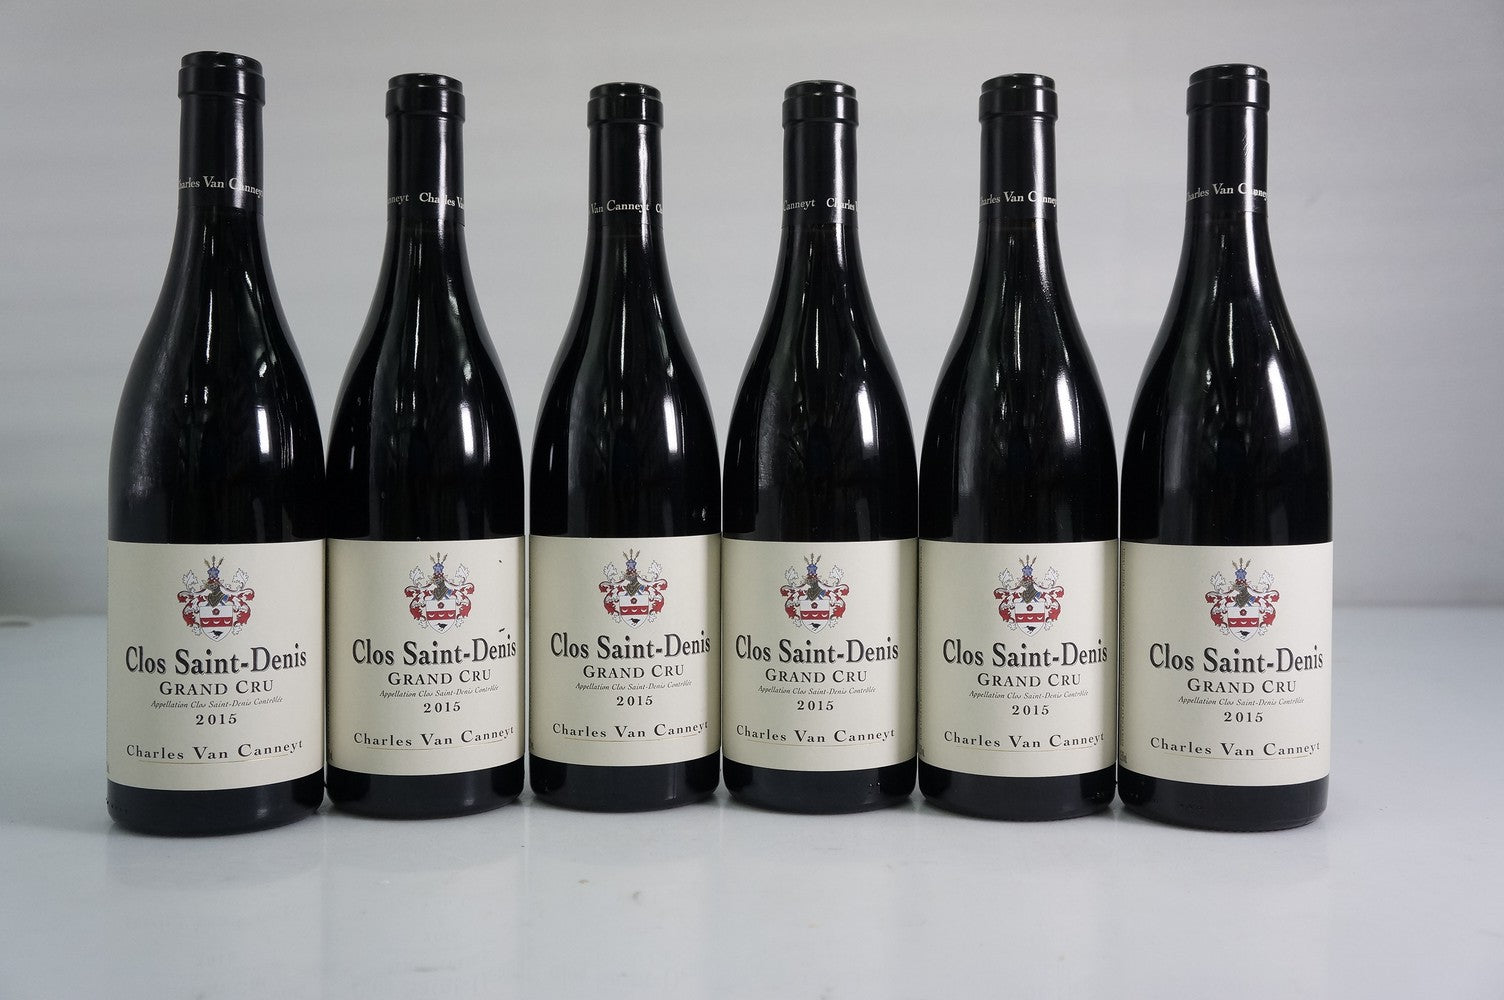 Charles Van Canneyt Clos Saint Denis Grand Cru 2015